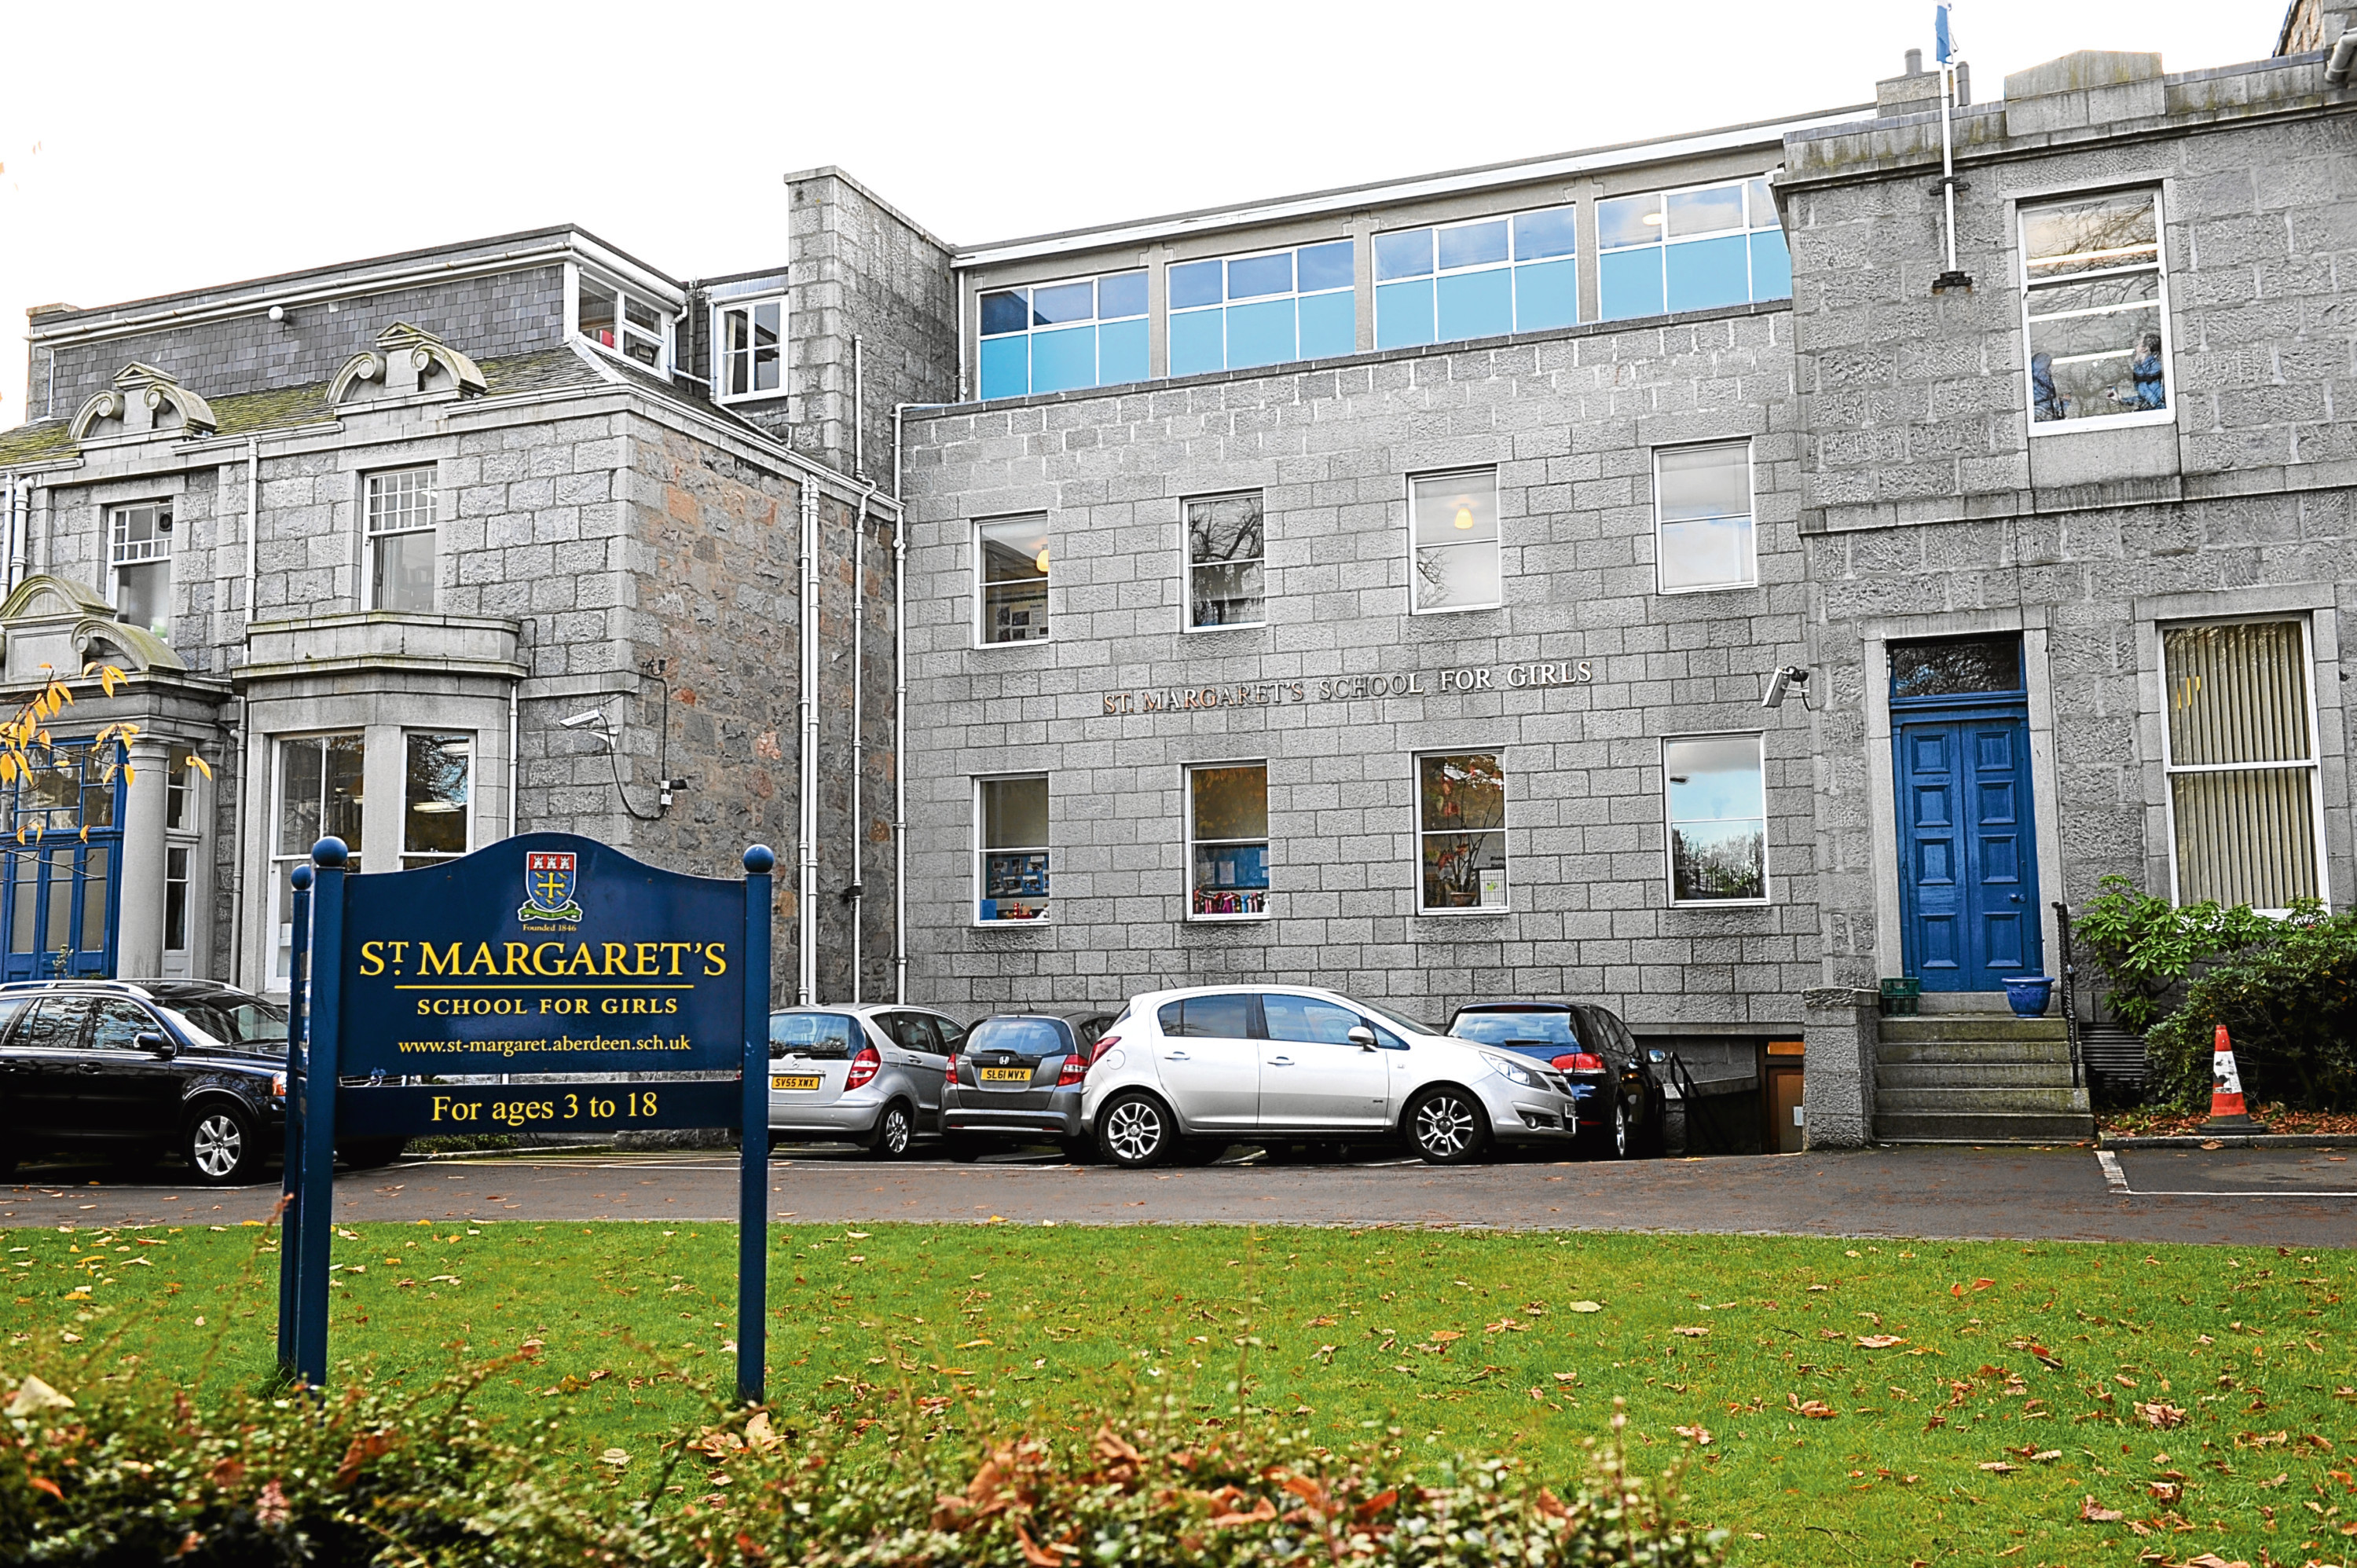 St Margaret's School for Girls will be able to utilise office space in August for classrooms